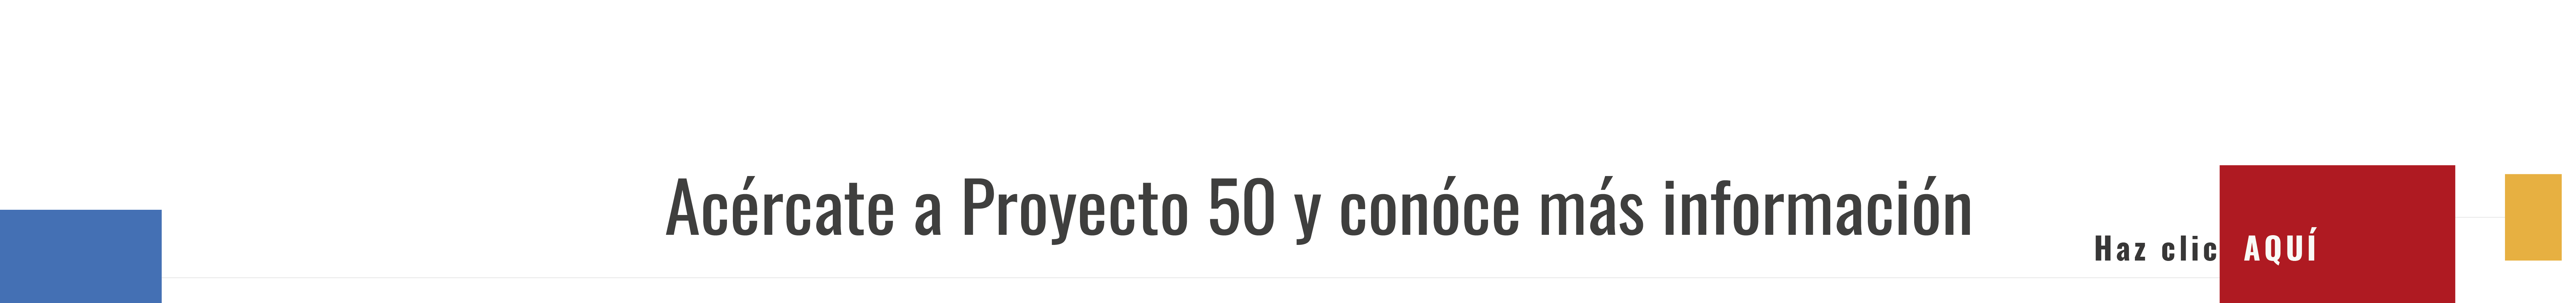 AcercateAProyecto50.png